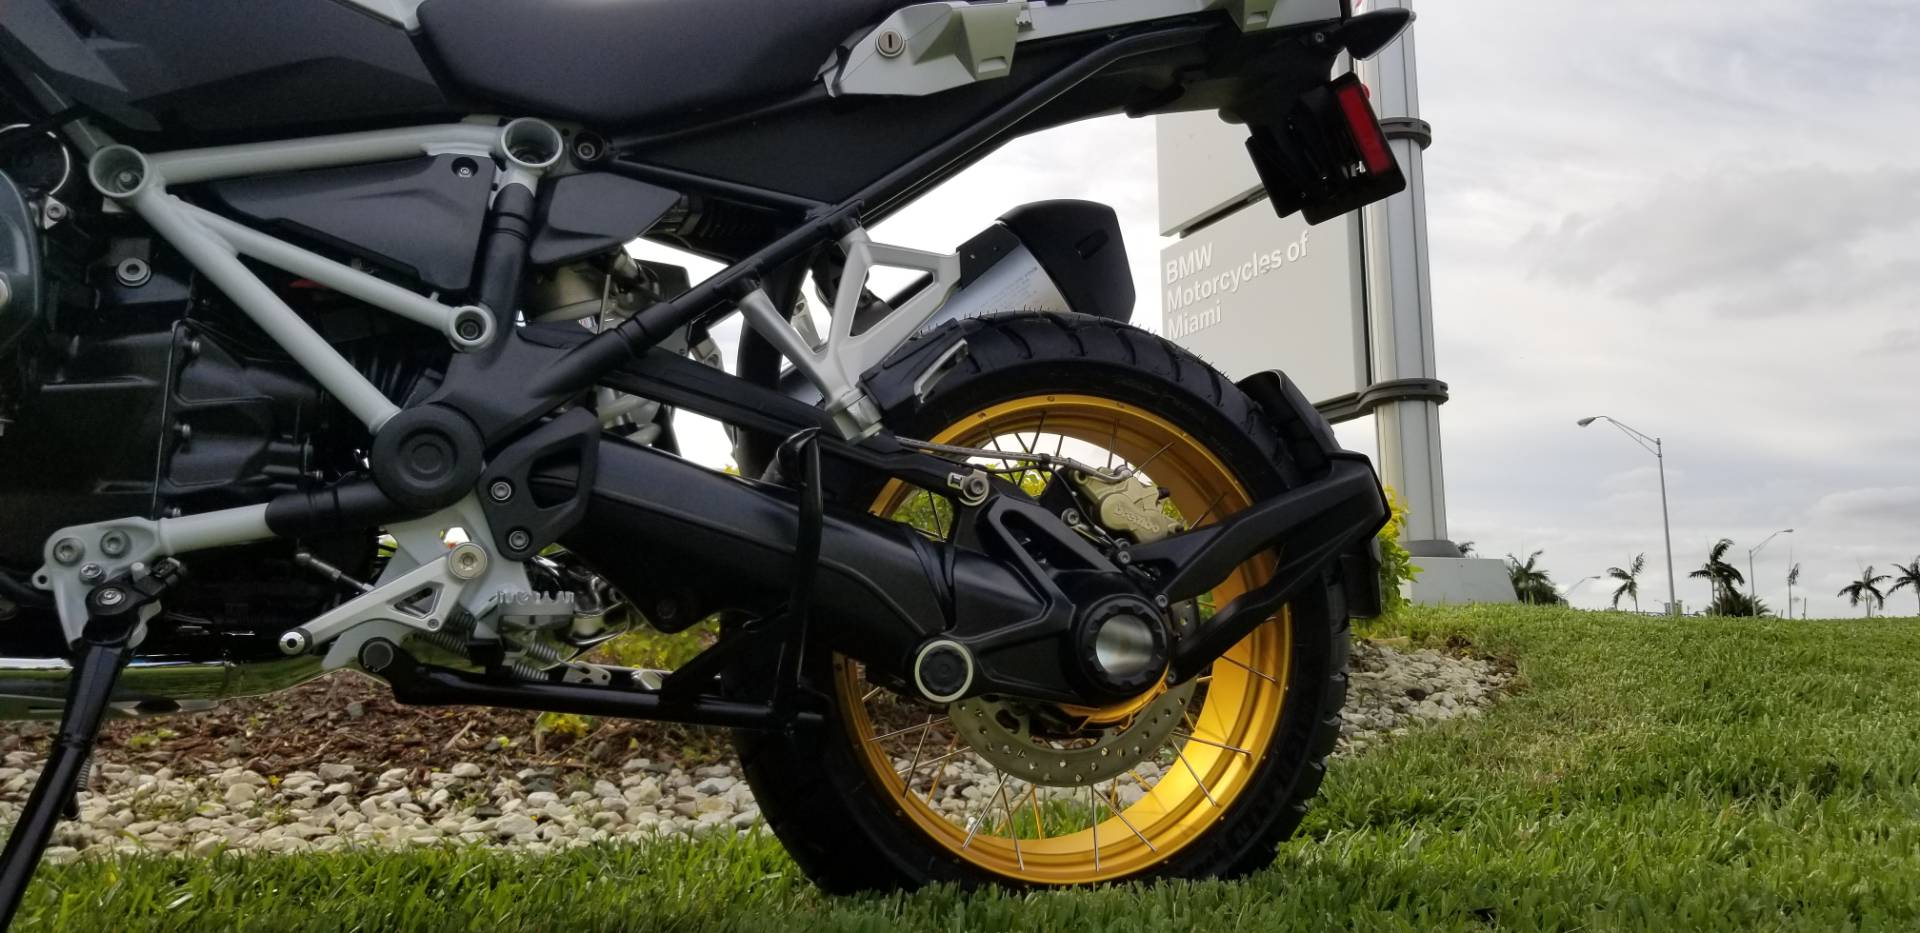 New 2019 BMW R 1250 GS for sale, New BMW for sale R 1250GS, New BMW Motorcycle R1250GS for sale, new BMW 1250GS, R1250GS, GS. BMW Motorcycles of Miami, Motorcycles of Miami, Motorcycles Miami, New Motorcycles, Used Motorcycles, pre-owned. #BMWMotorcyclesOfMiami #MotorcyclesOfMiami. - Photo 19